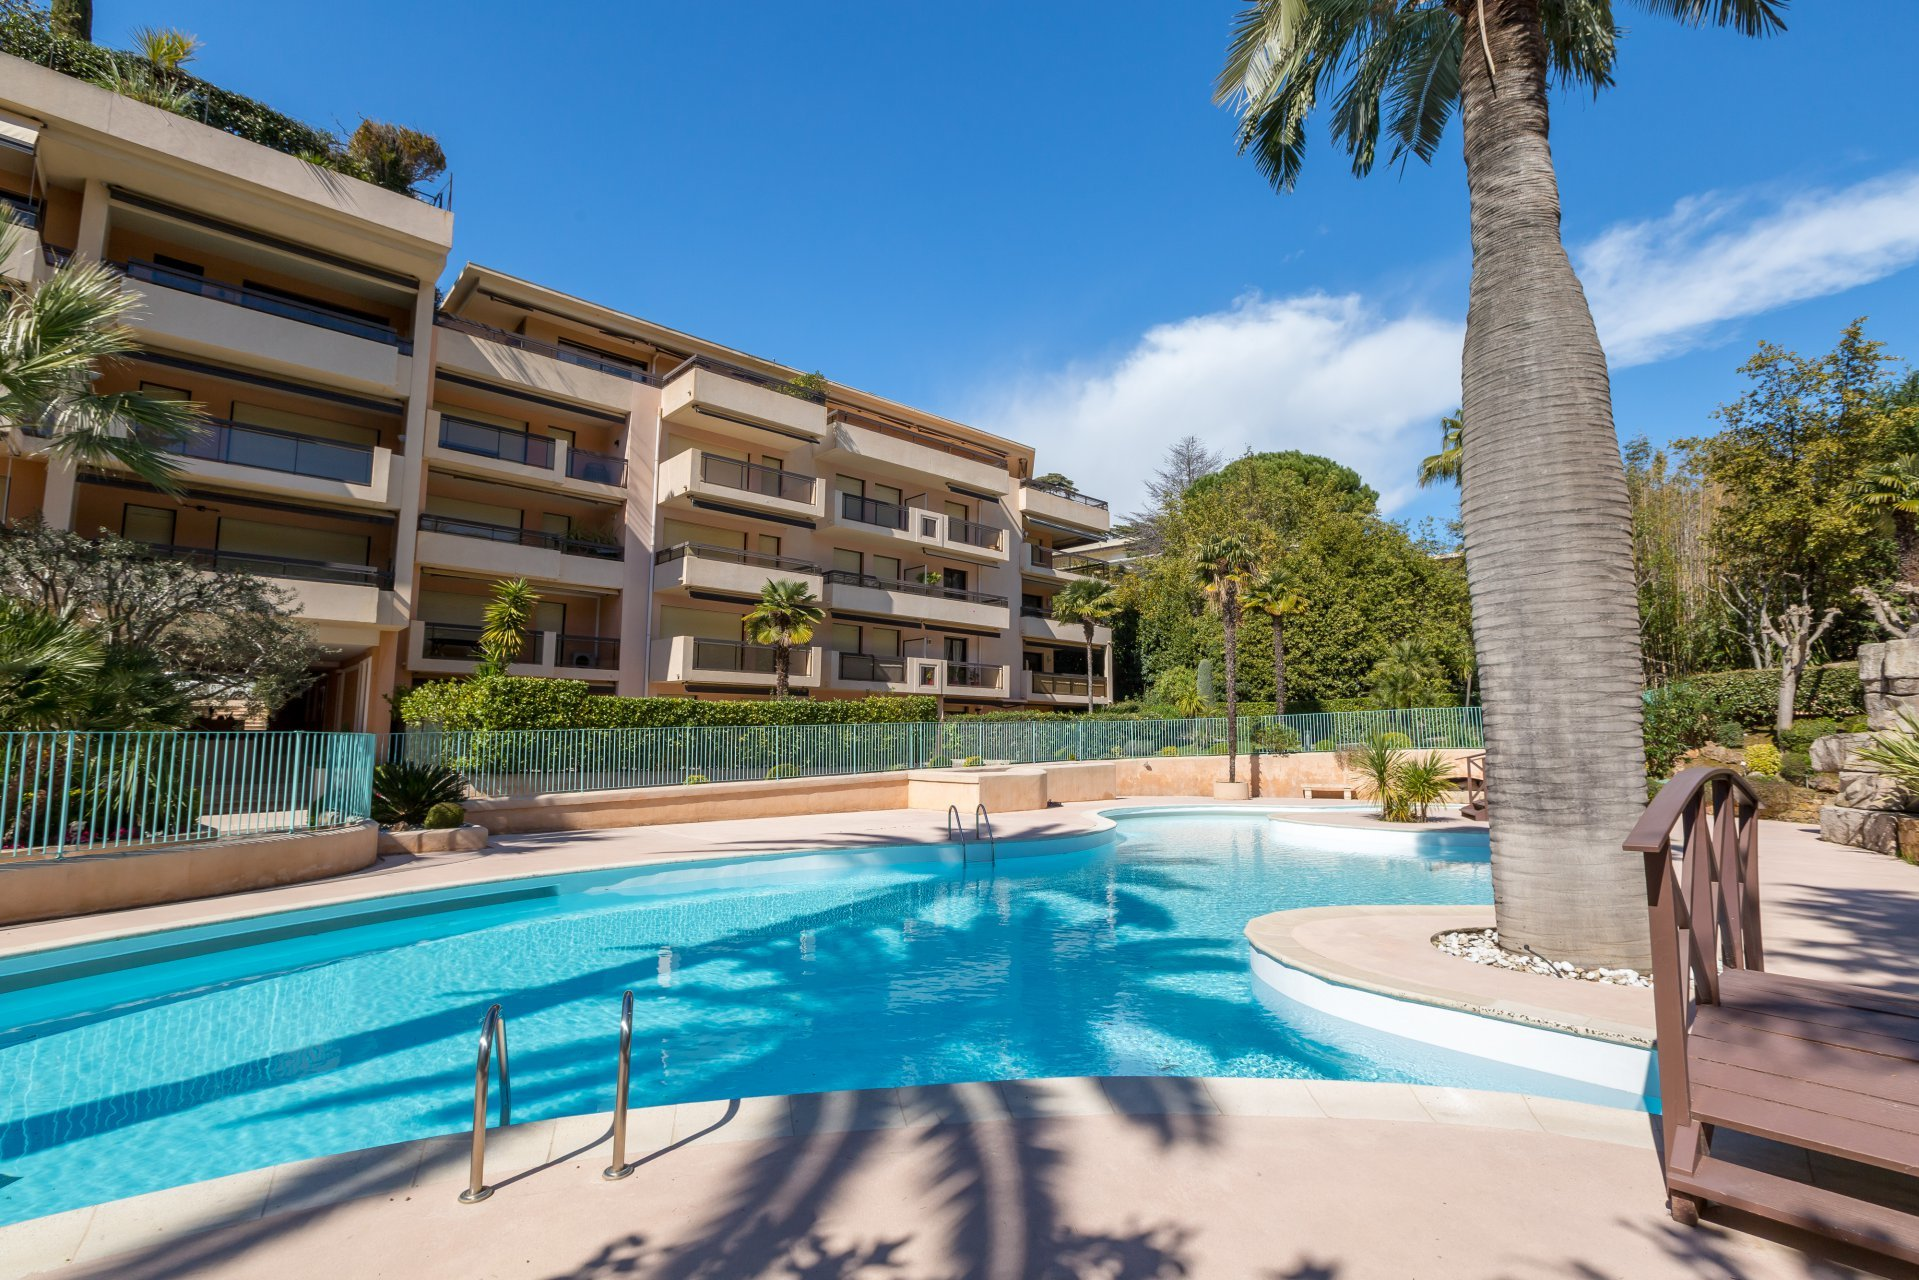 Cannes - Large 3-rooms apartment with terrasse in a residence with swimming pool and tennis court